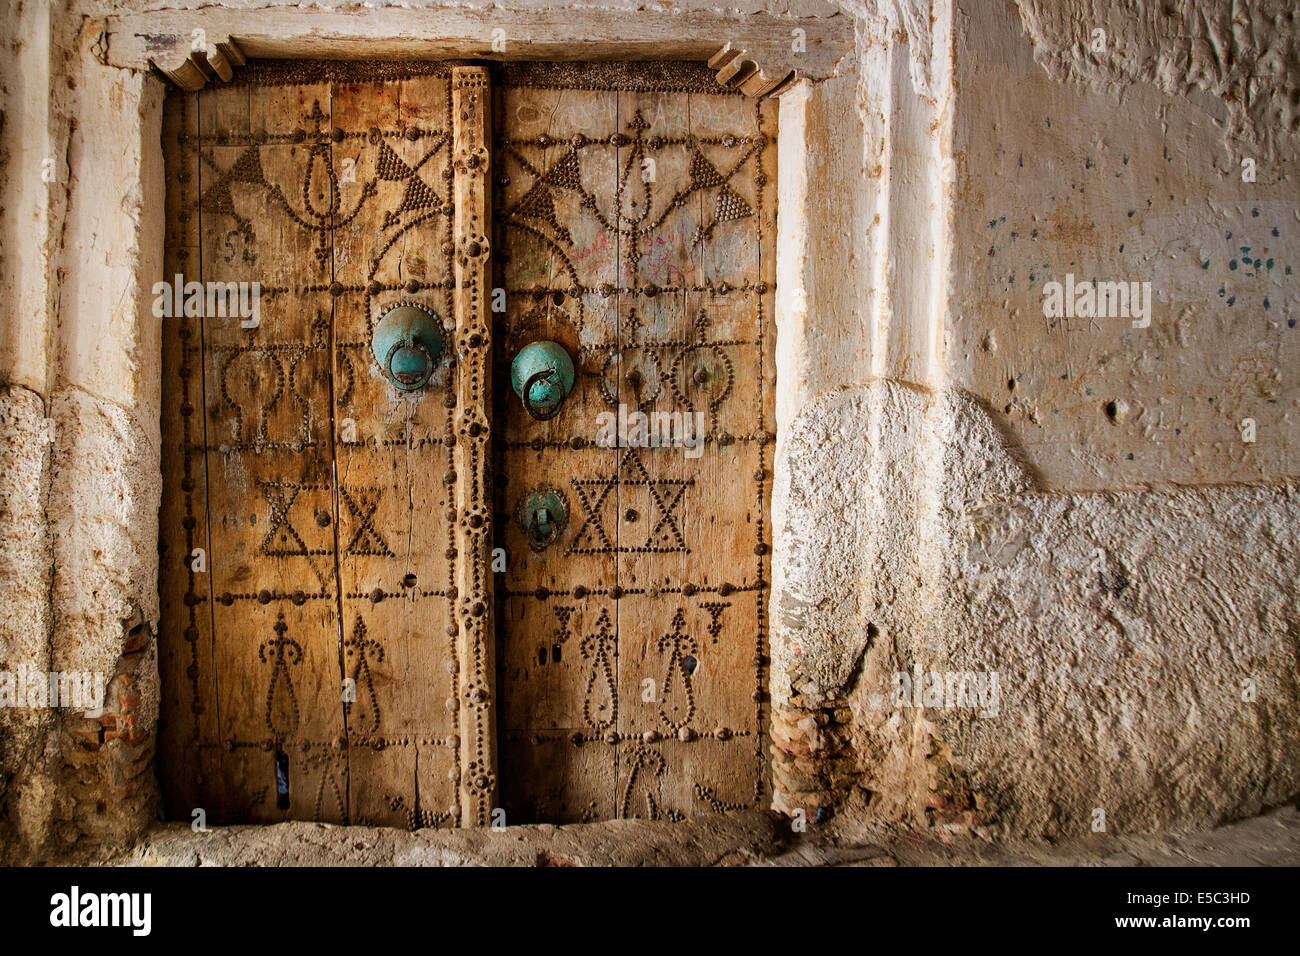 Traditional door (knobs) in the old town of Nefta (Medina) an oasis in the Saharan desert. & Traditional door (knobs) in the old town of Nefta (Medina) an oasis ...